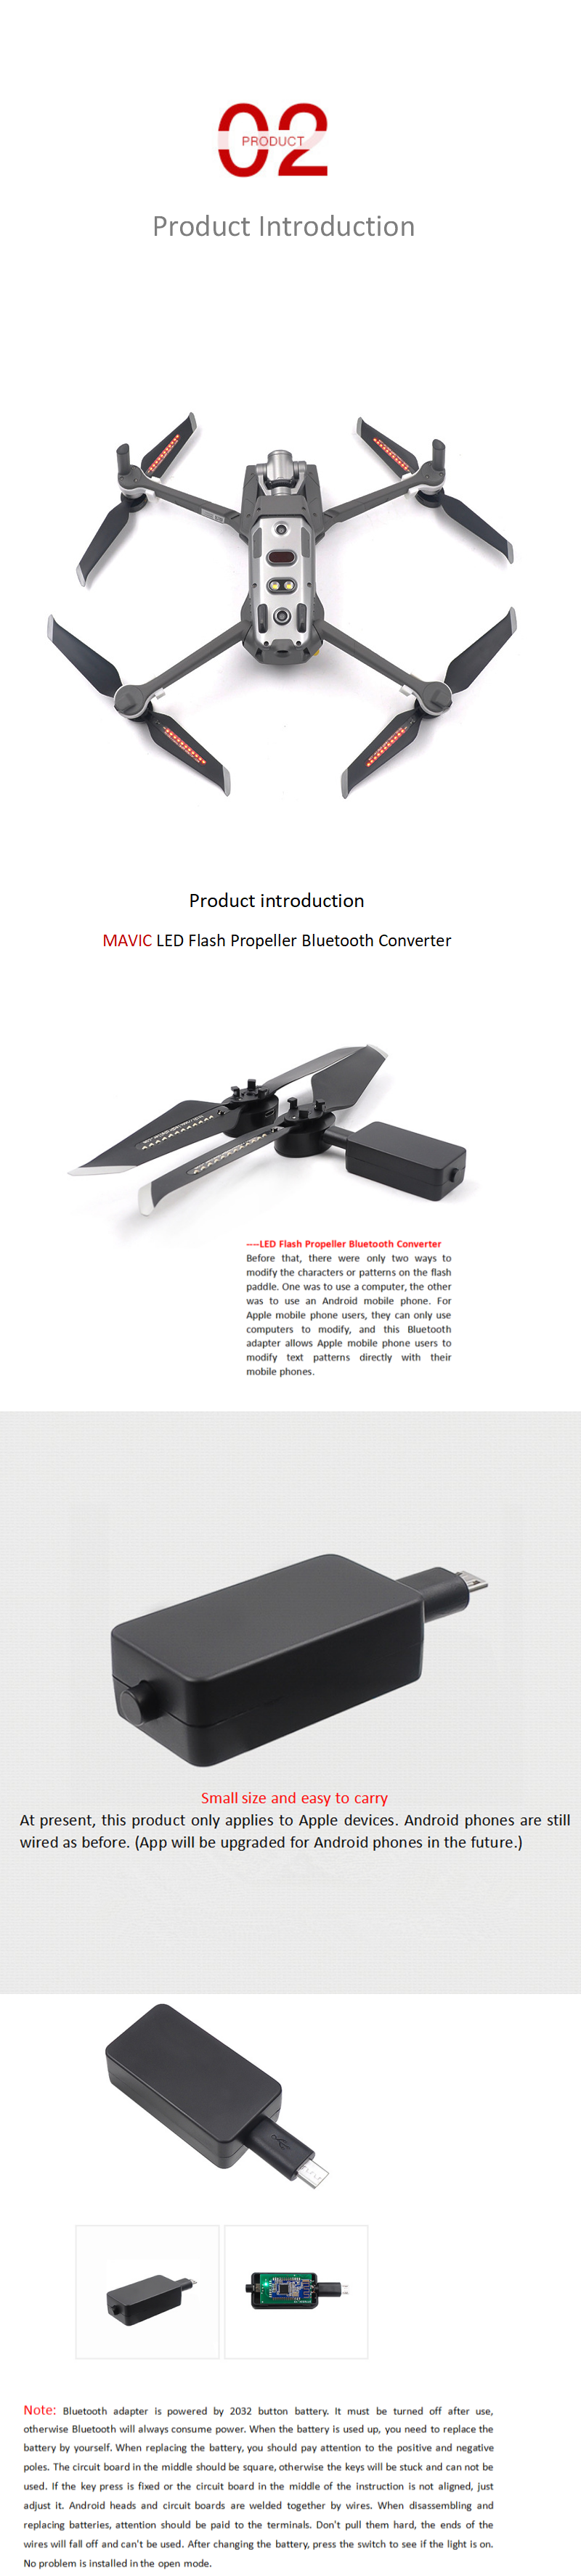 STARTRC Red LED Flash Word Propeller Programmable Rechargeable Props Blade Bluetooth Converter Editor for DJI Mavic 2 Pro/Zoom Drone - Photo: 3